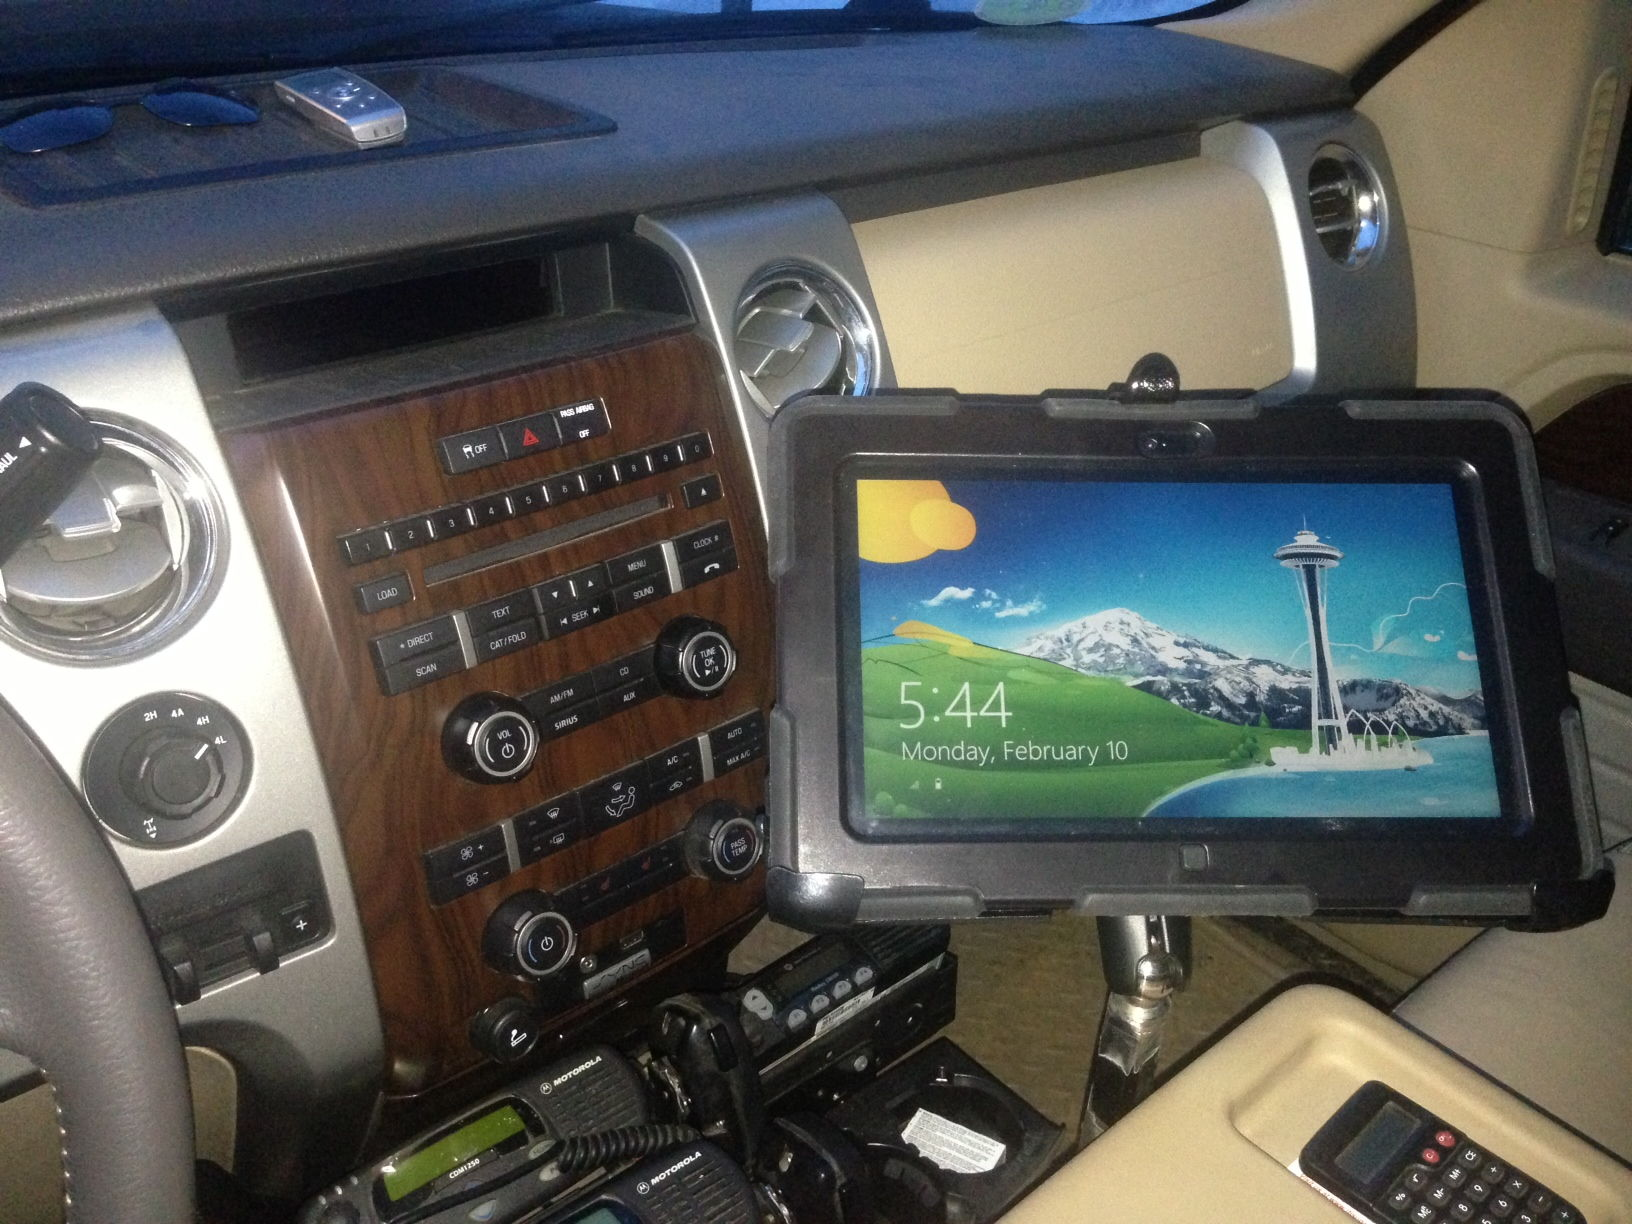 2015 F 150 For Sale >> Finally found a Great Mount for Phones/Tablets ...